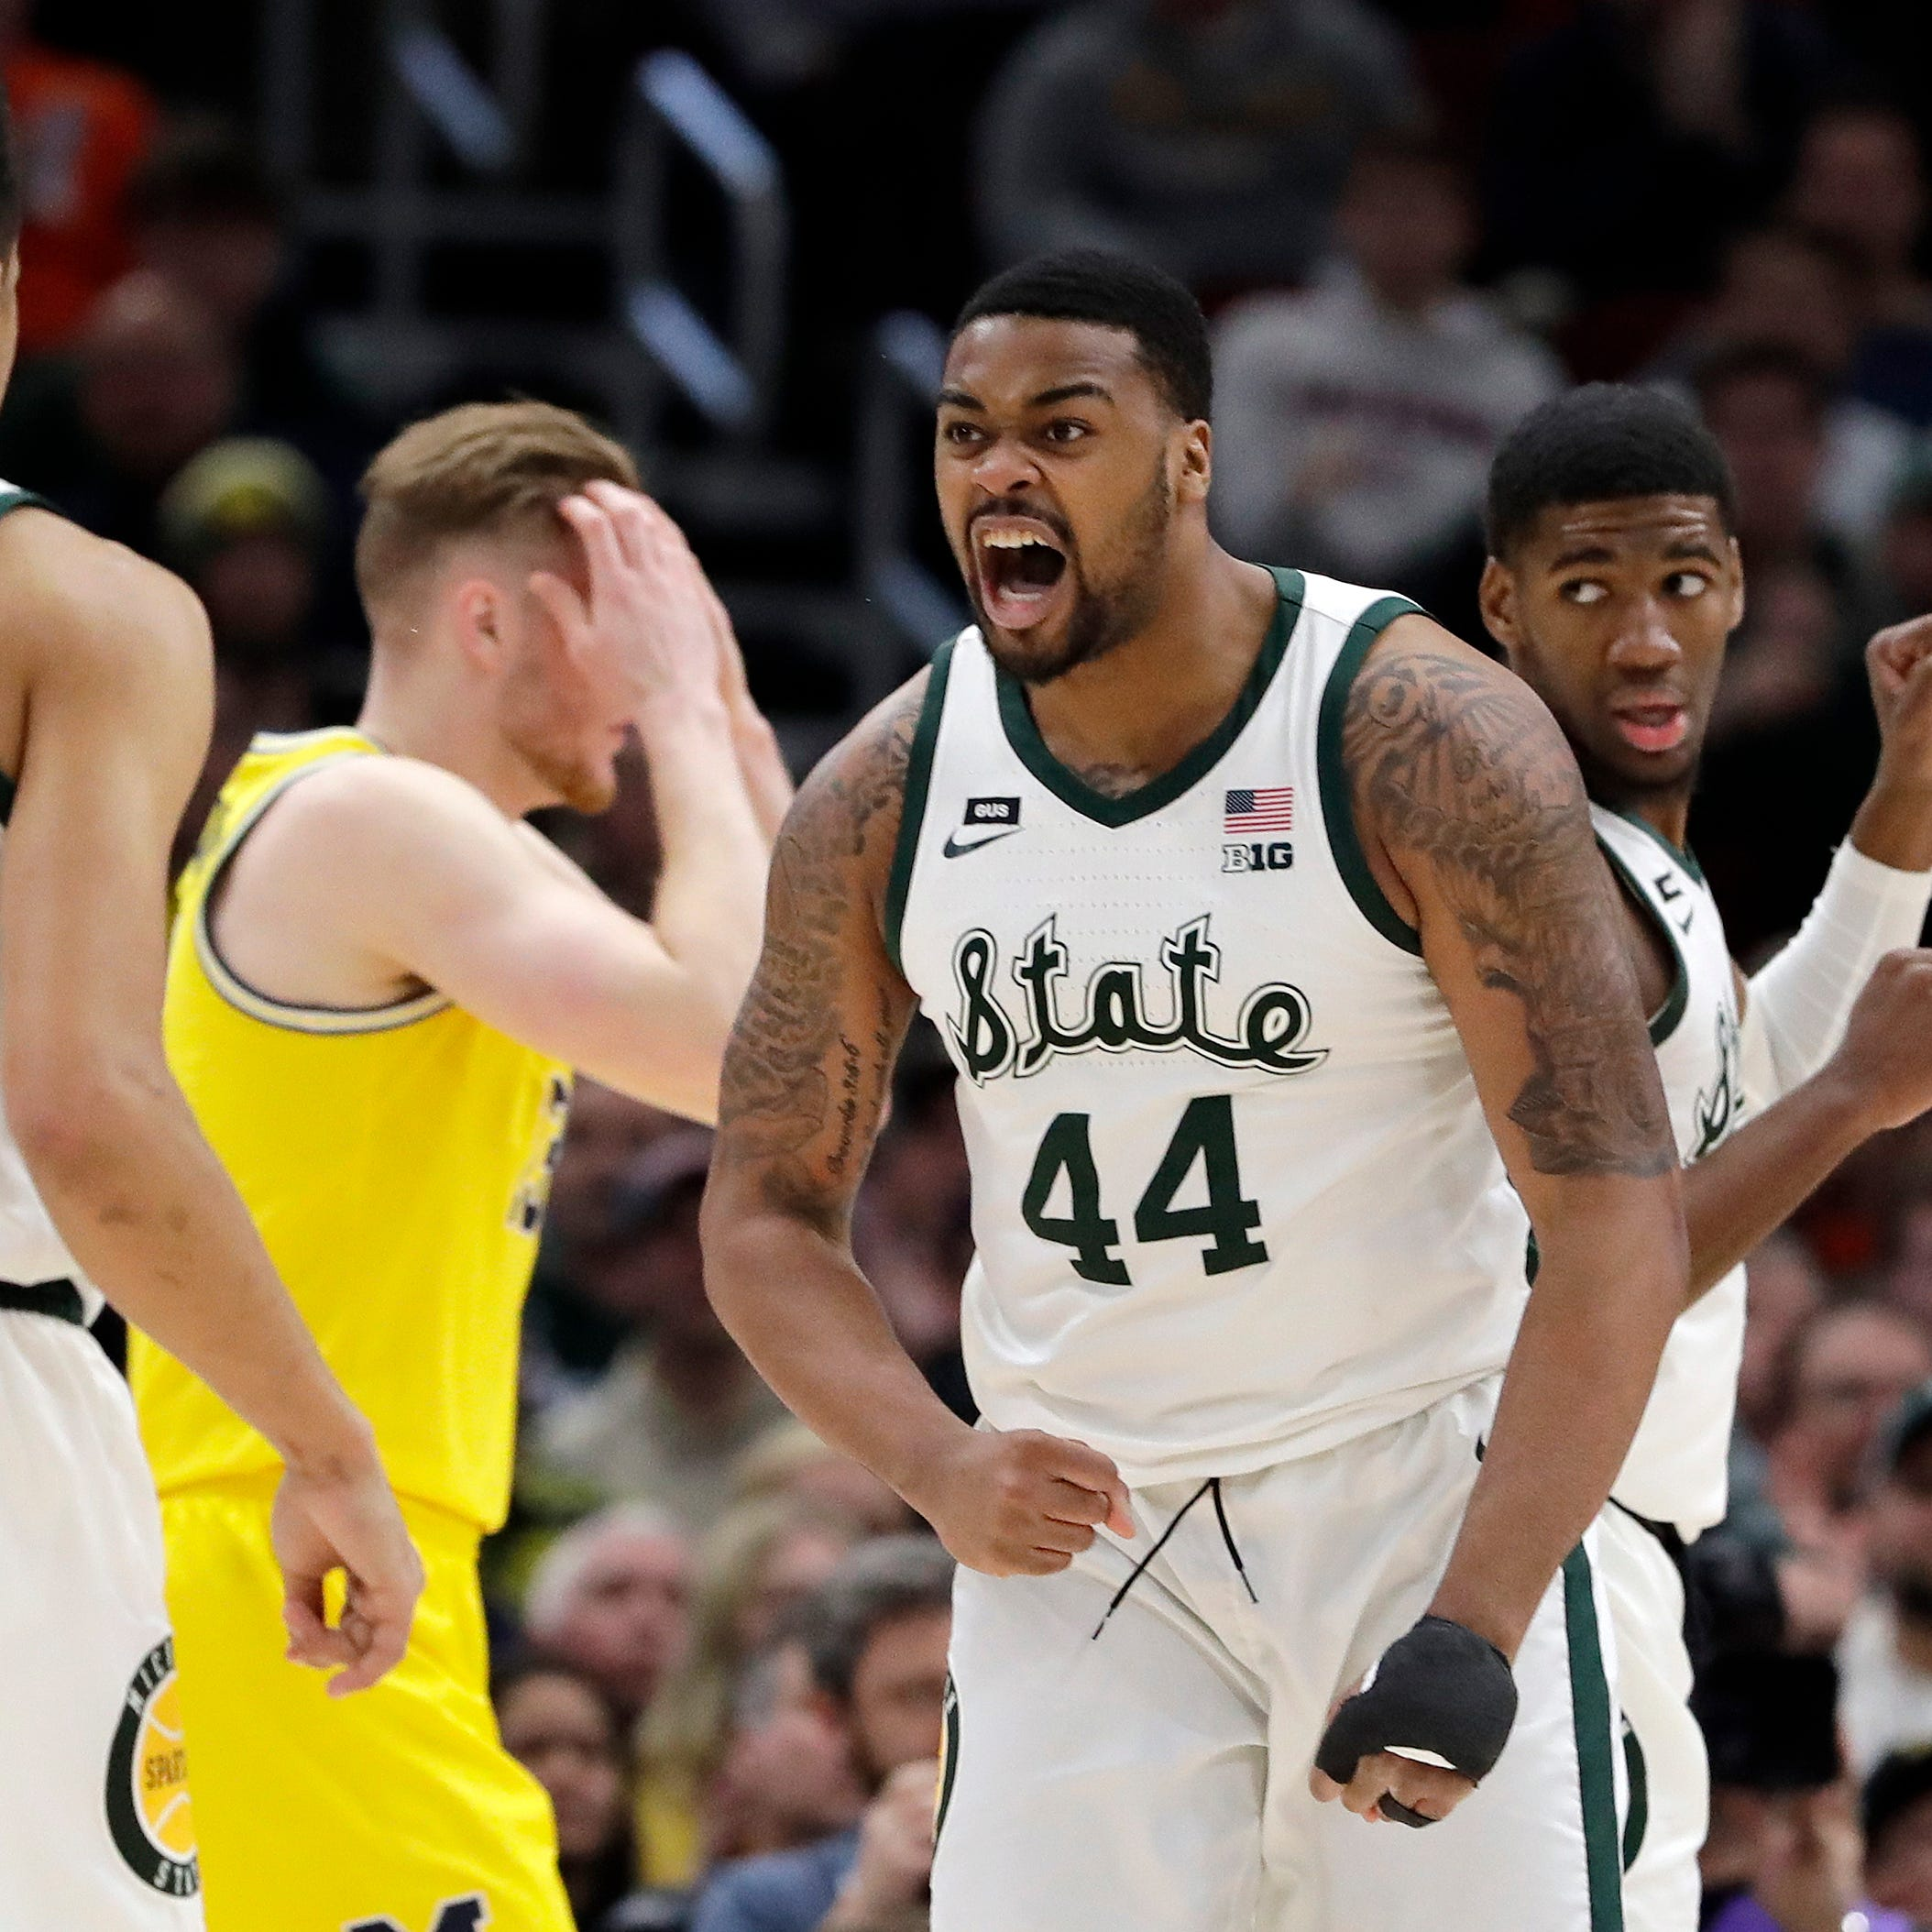 Live updates: 2-seed Michigan State to play Bradley, 2-seed Michigan gets Montana